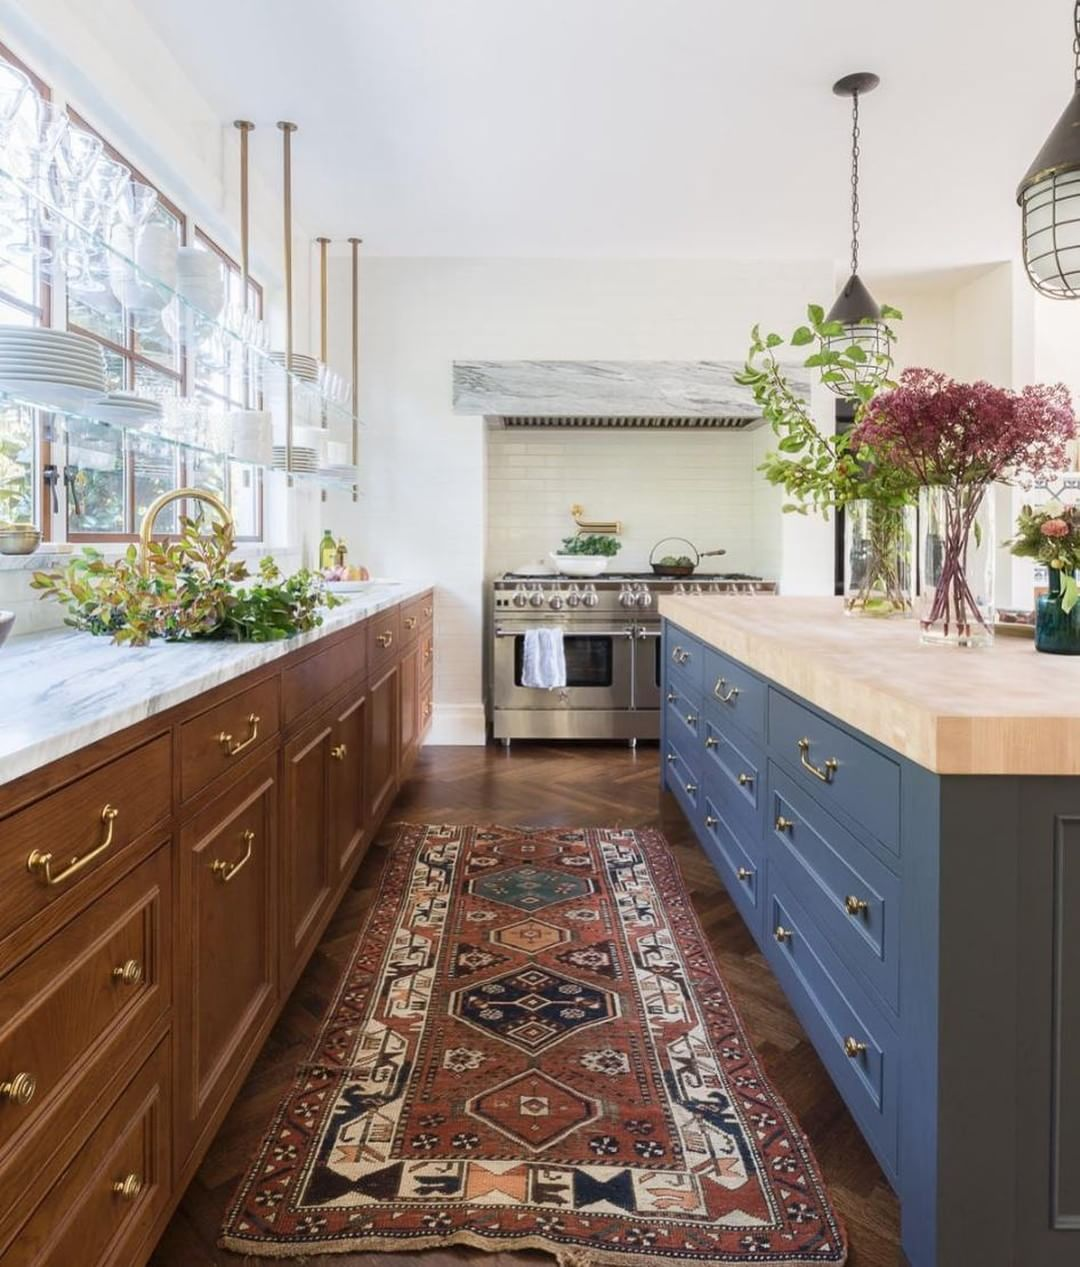 Mixing Cabinet Colors And Countertops Are Done So Beautifully In This Kitchen Design By Katiehackworth Interior Design Kitchen Eclectic Kitchen Kitchen Trends